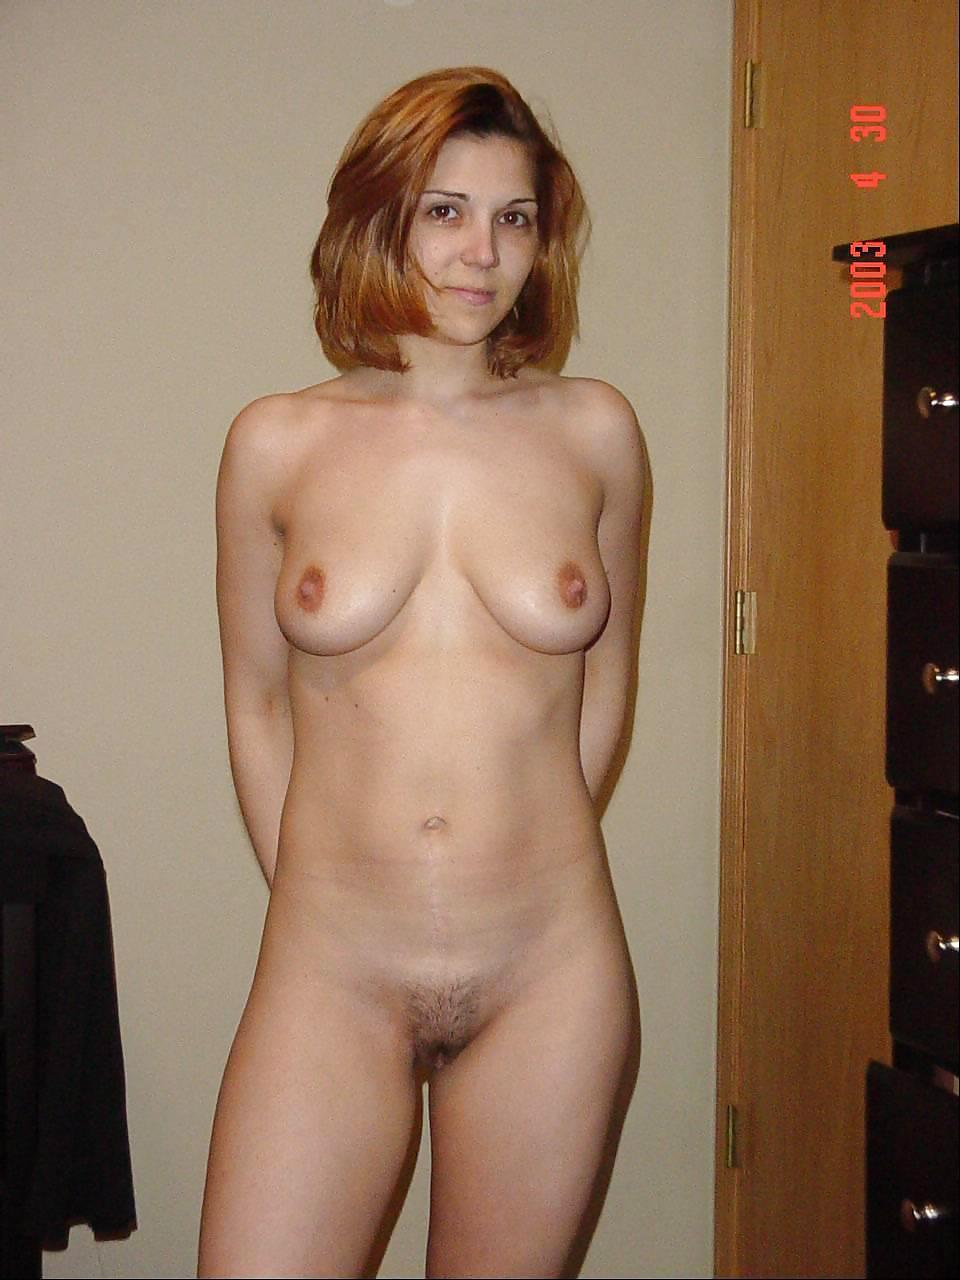 Pee shower naked wife of